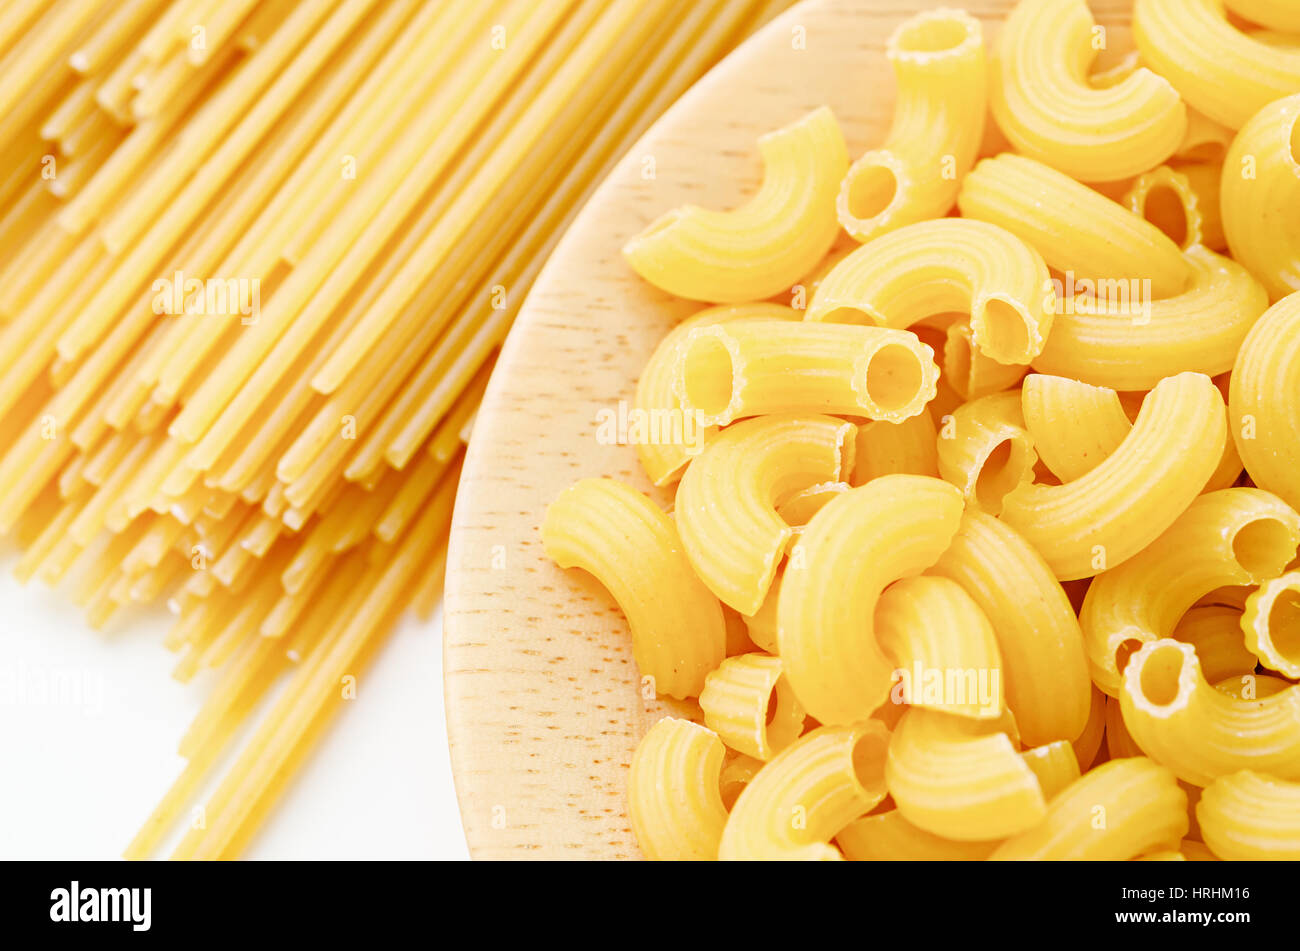 Raw Elbow Macaroni In Wooden Dish With Raw Pasta On White Background